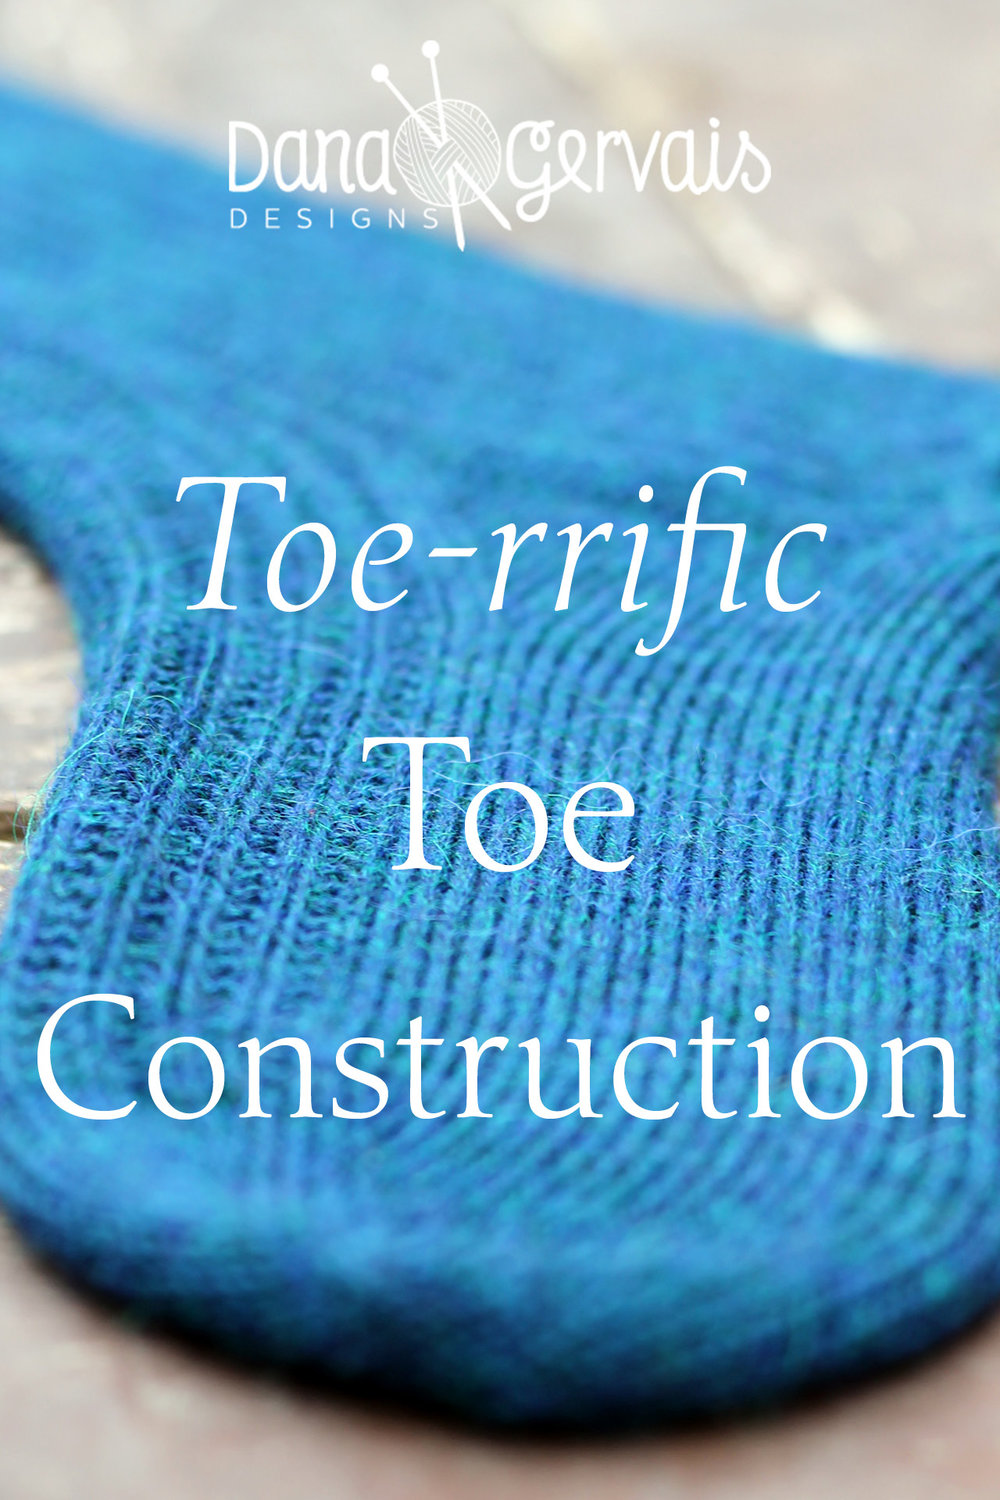 toe construction.jpg